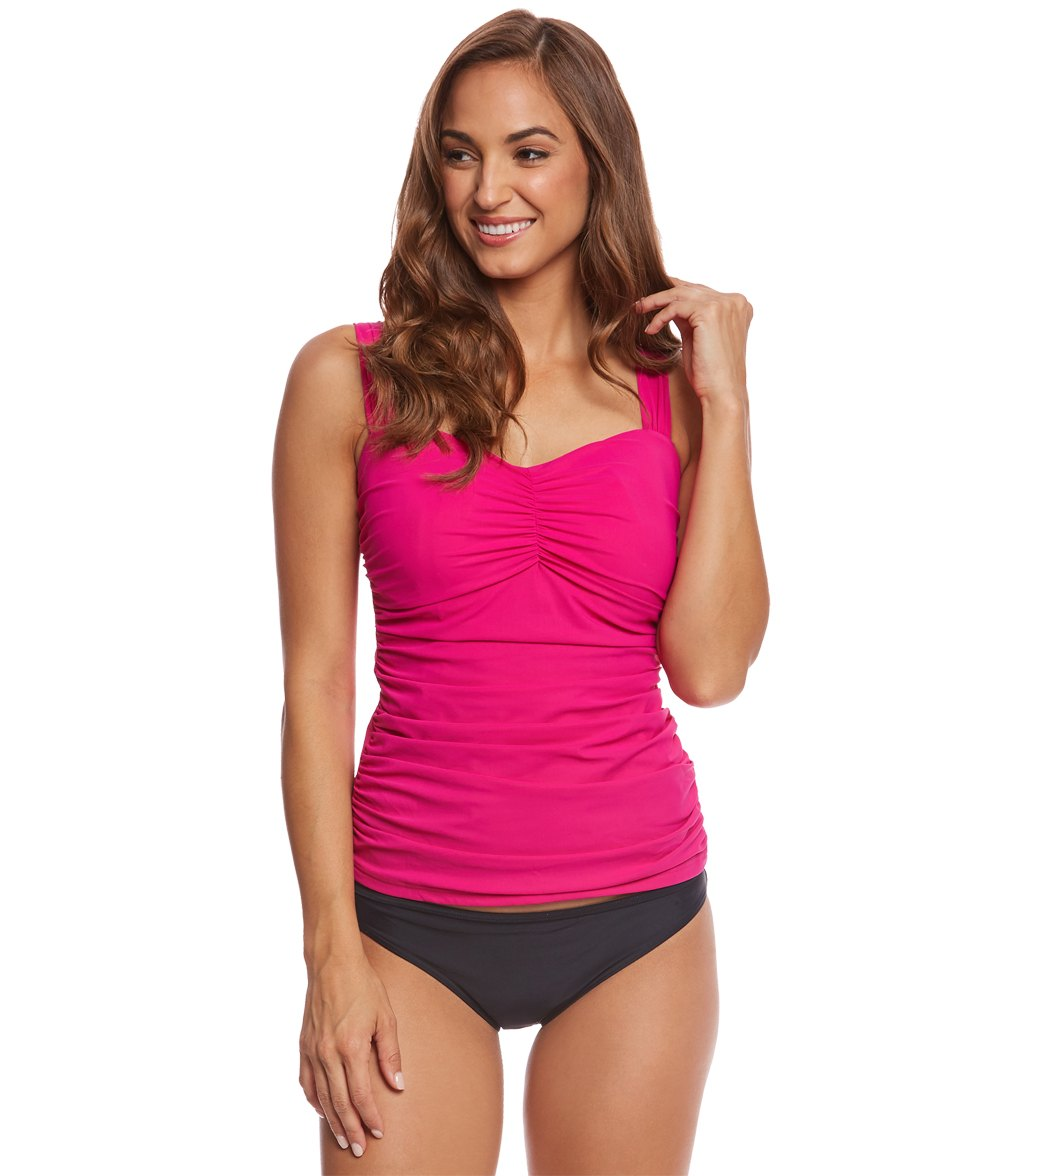 d93c6813a46 Profile by Gottex Tutti Frutti Tankini Top (E Cup) at SwimOutlet.com ...